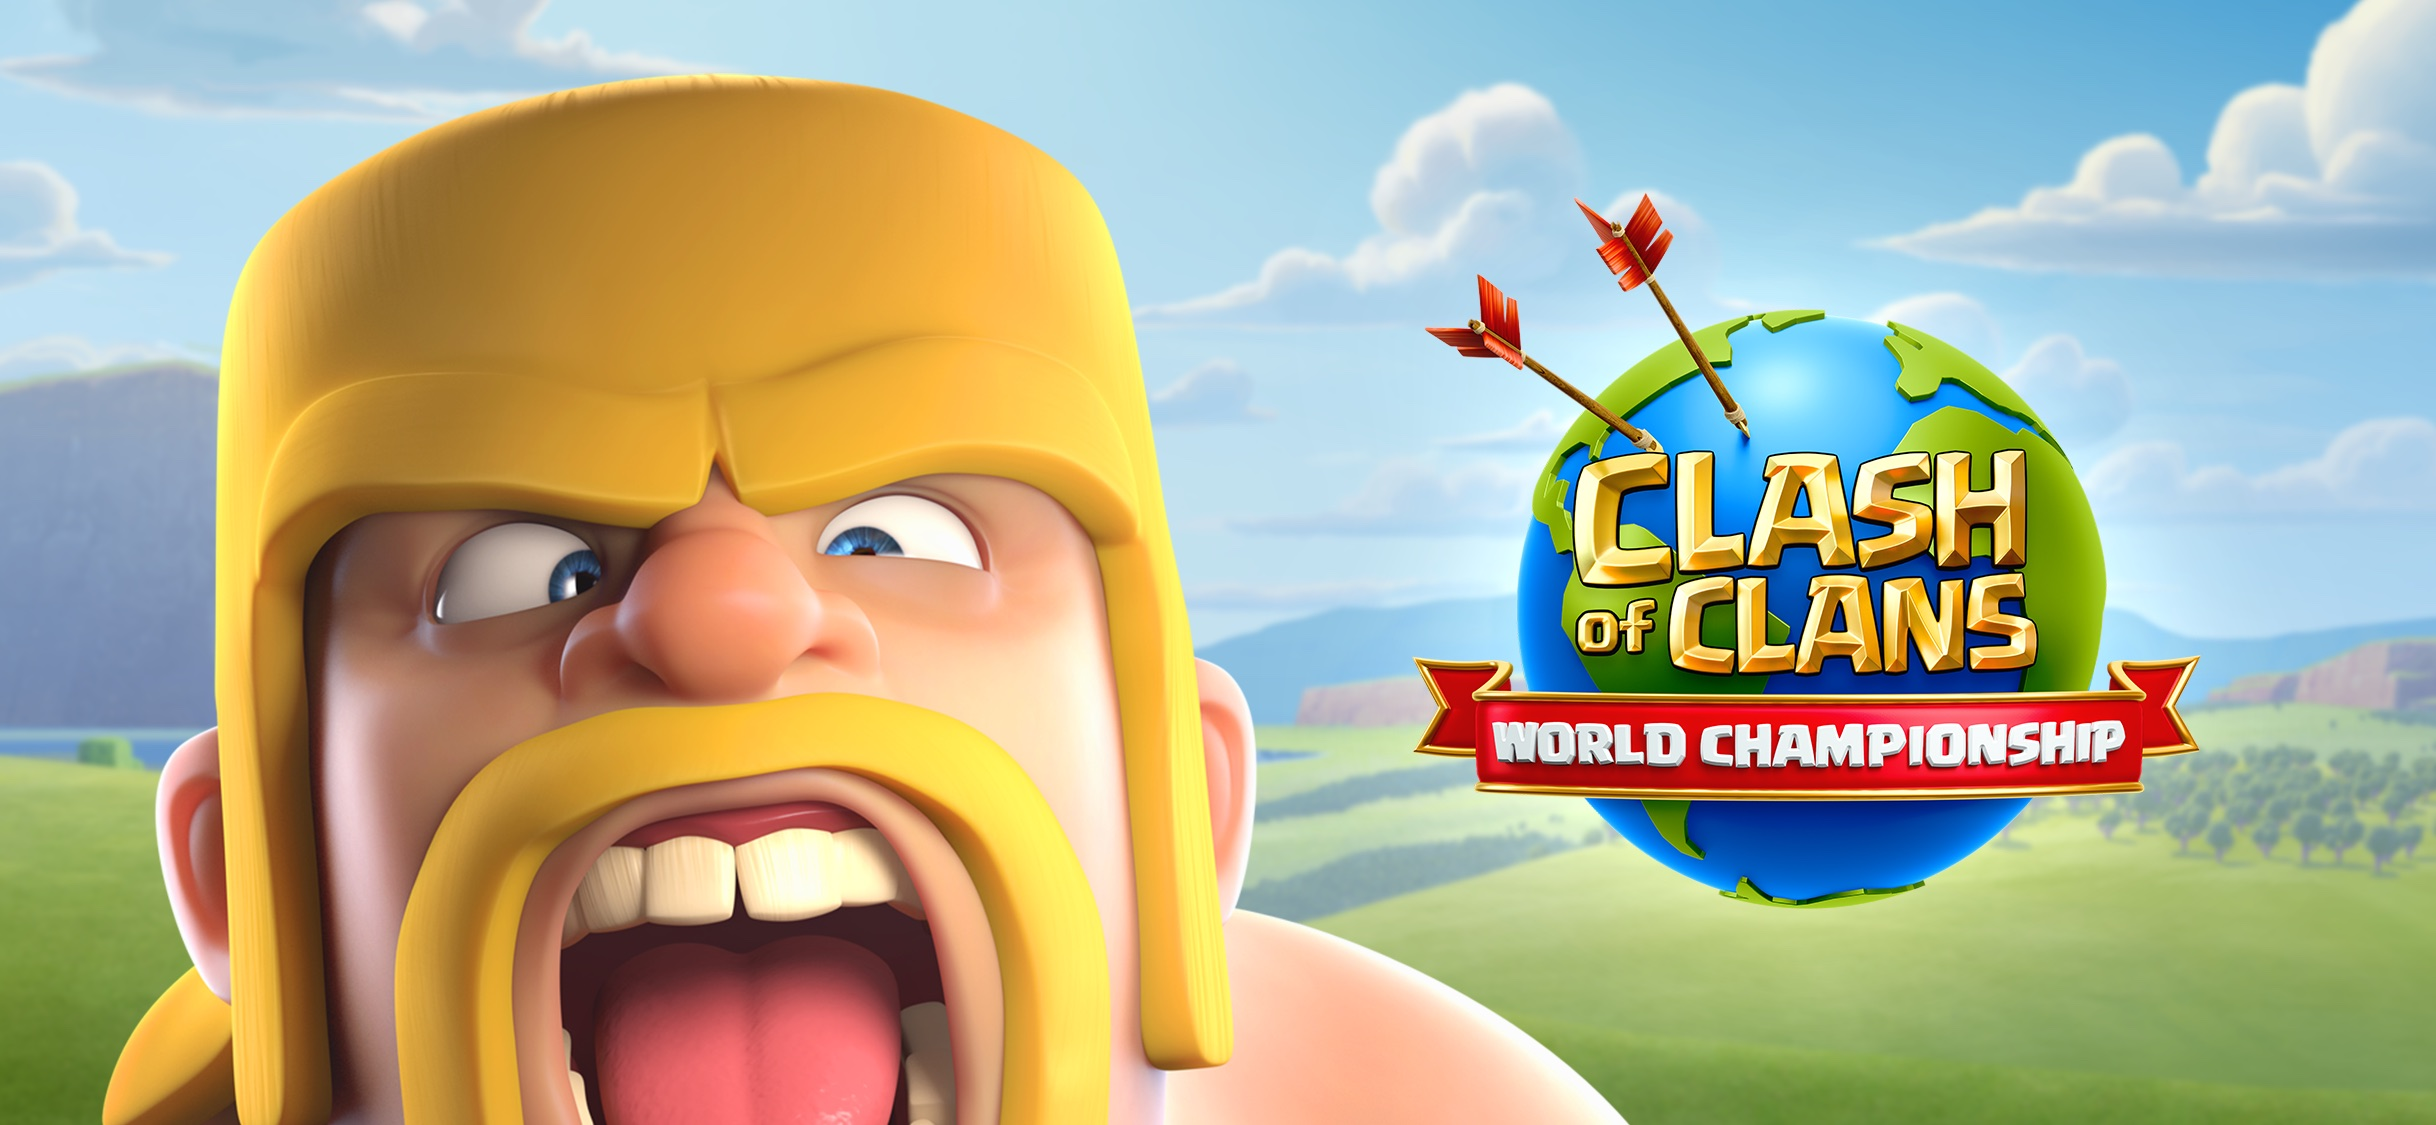 Were Excited To Announce The Clash Of Clans World Championship 2019 Thats Six Months Full Of Action Packed Competitions With A New 5v5 Format Based On